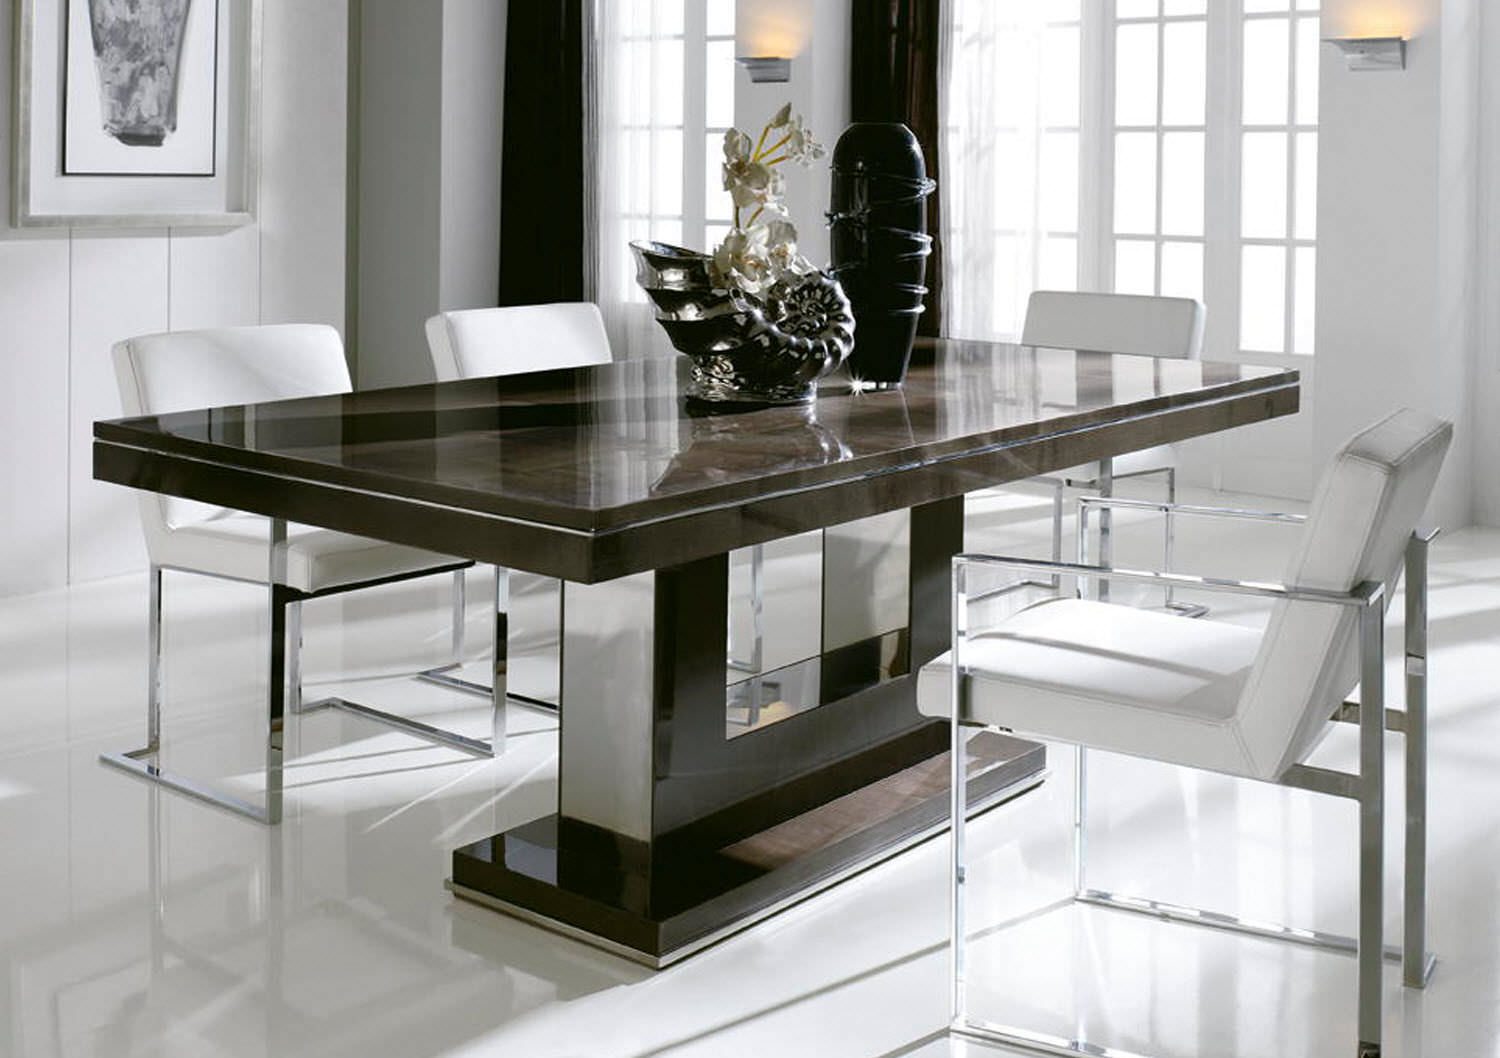 Dining Table With Emperador Marble Top And Walnut Base. | Tables |  Pinterest | Marble Top, Marbles And Dining